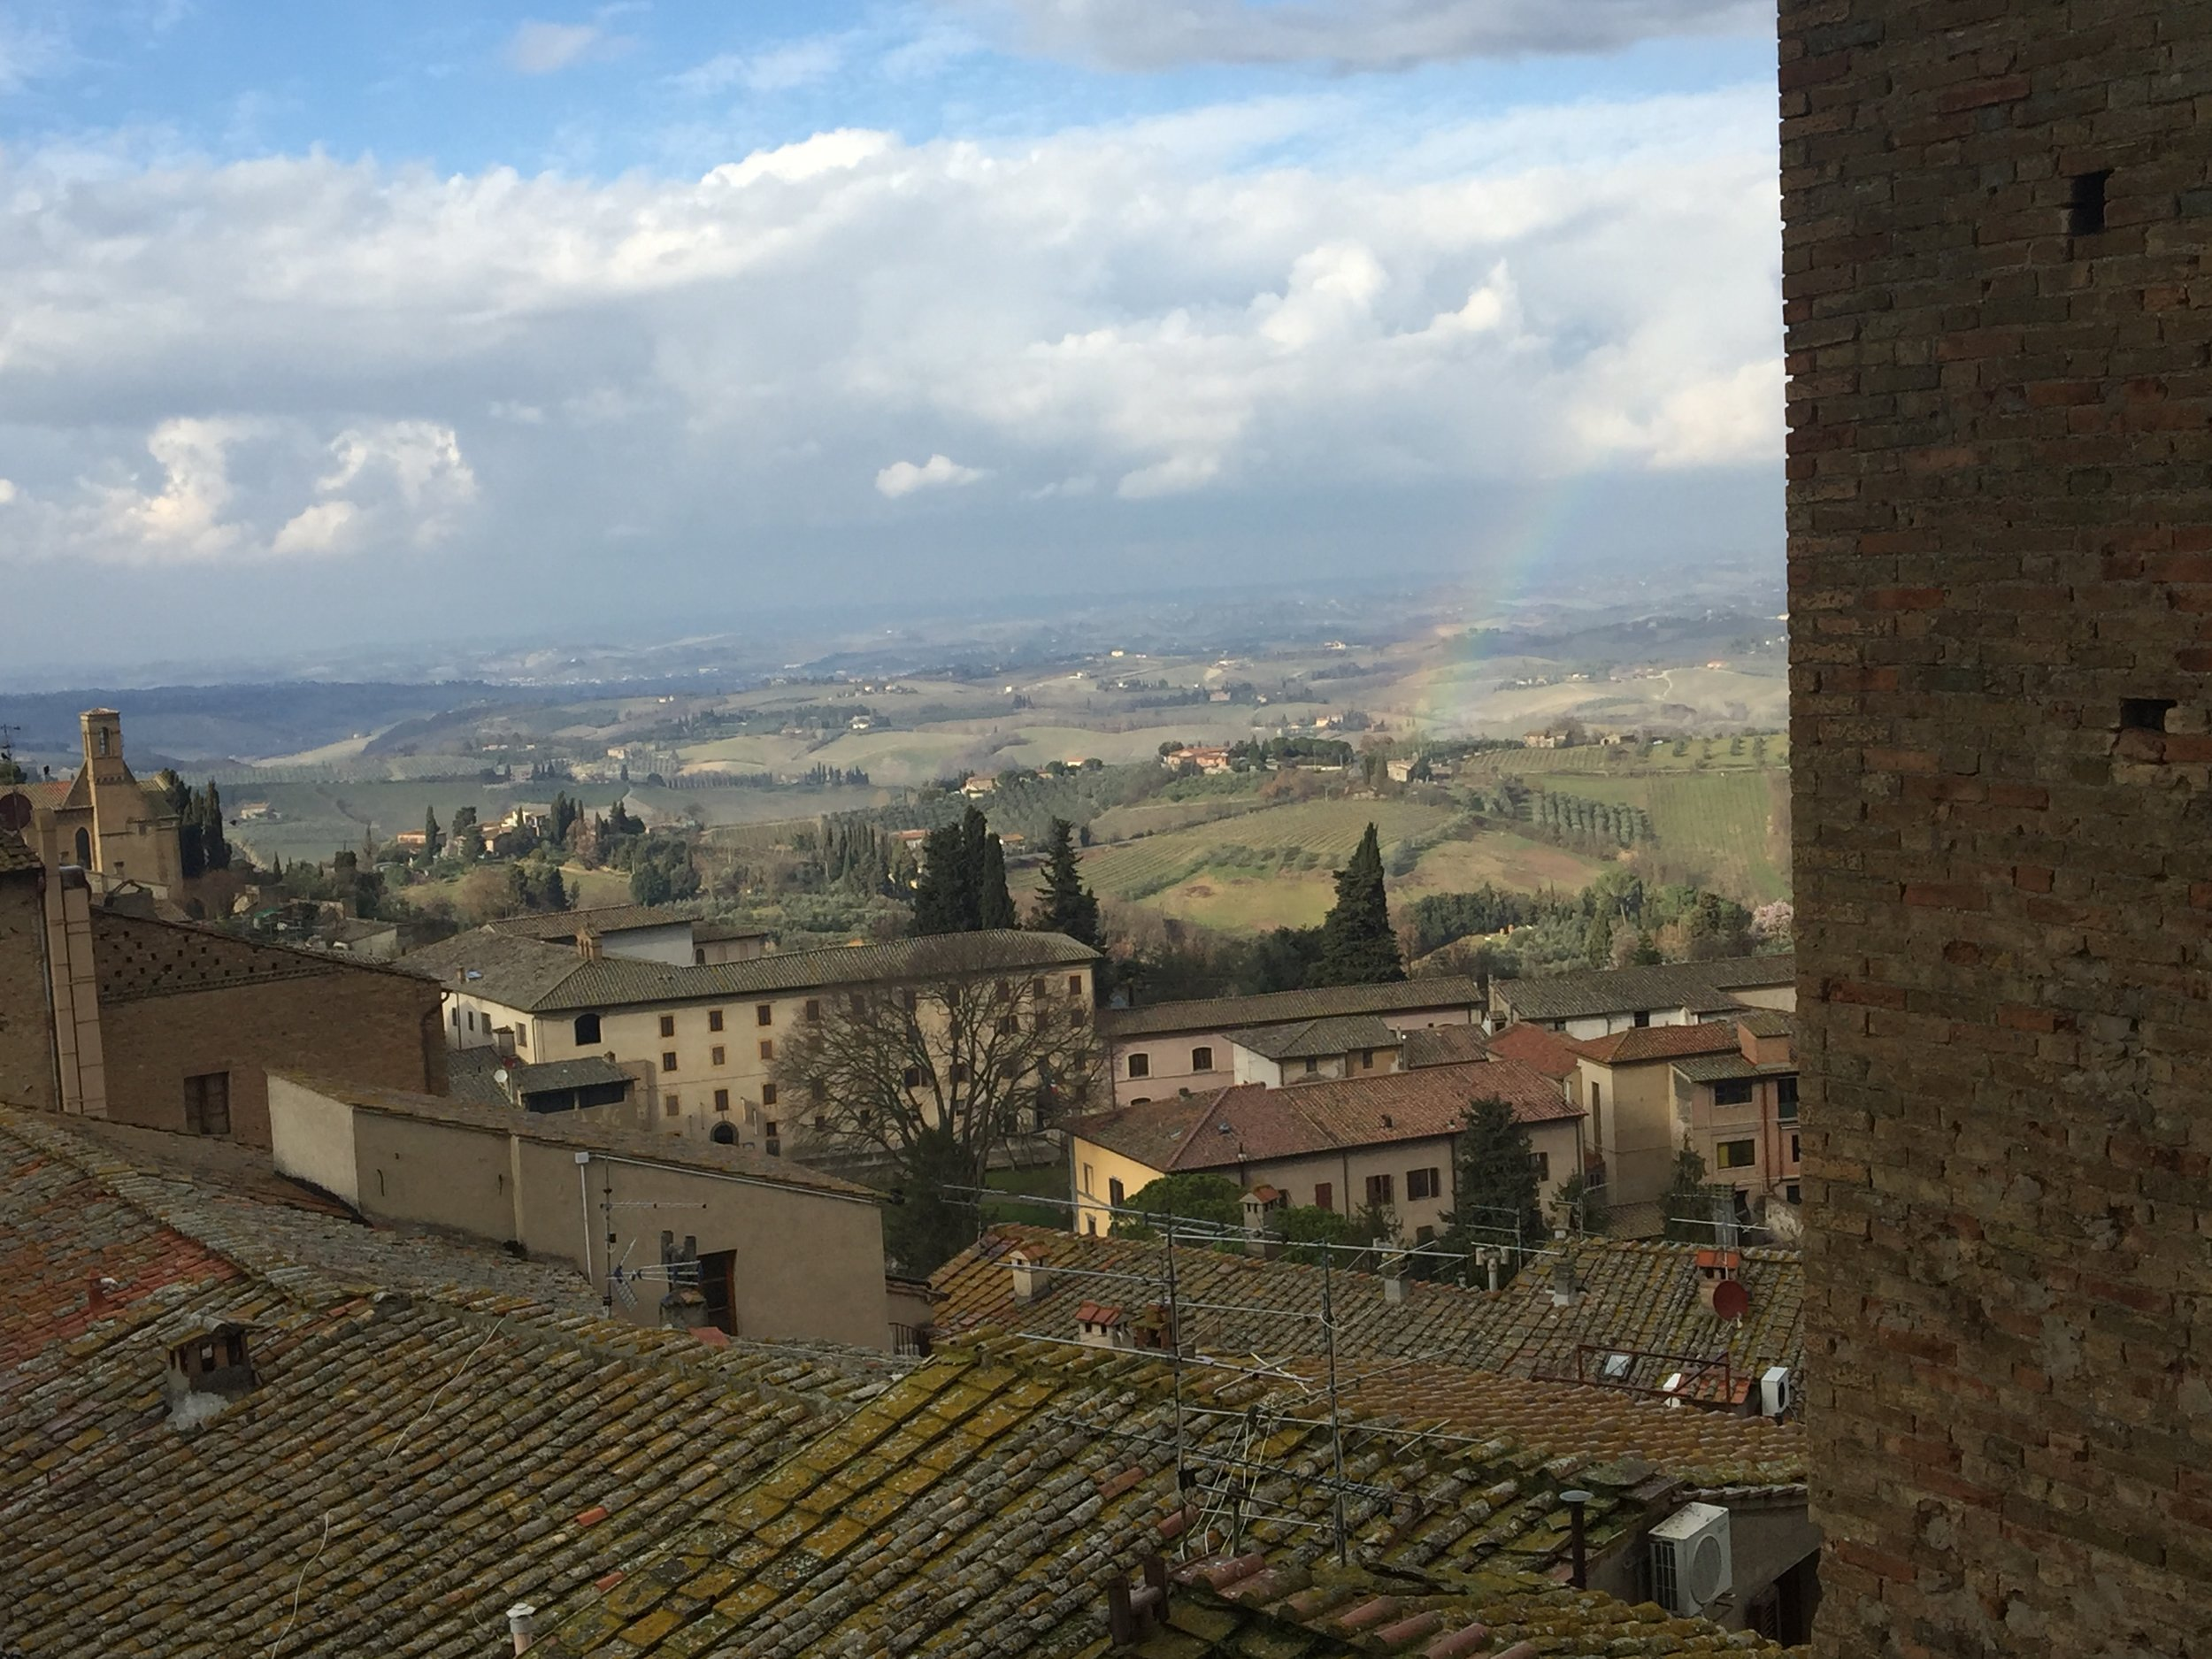 Experience Tuscany As Tourists Rarely See It Little Roads